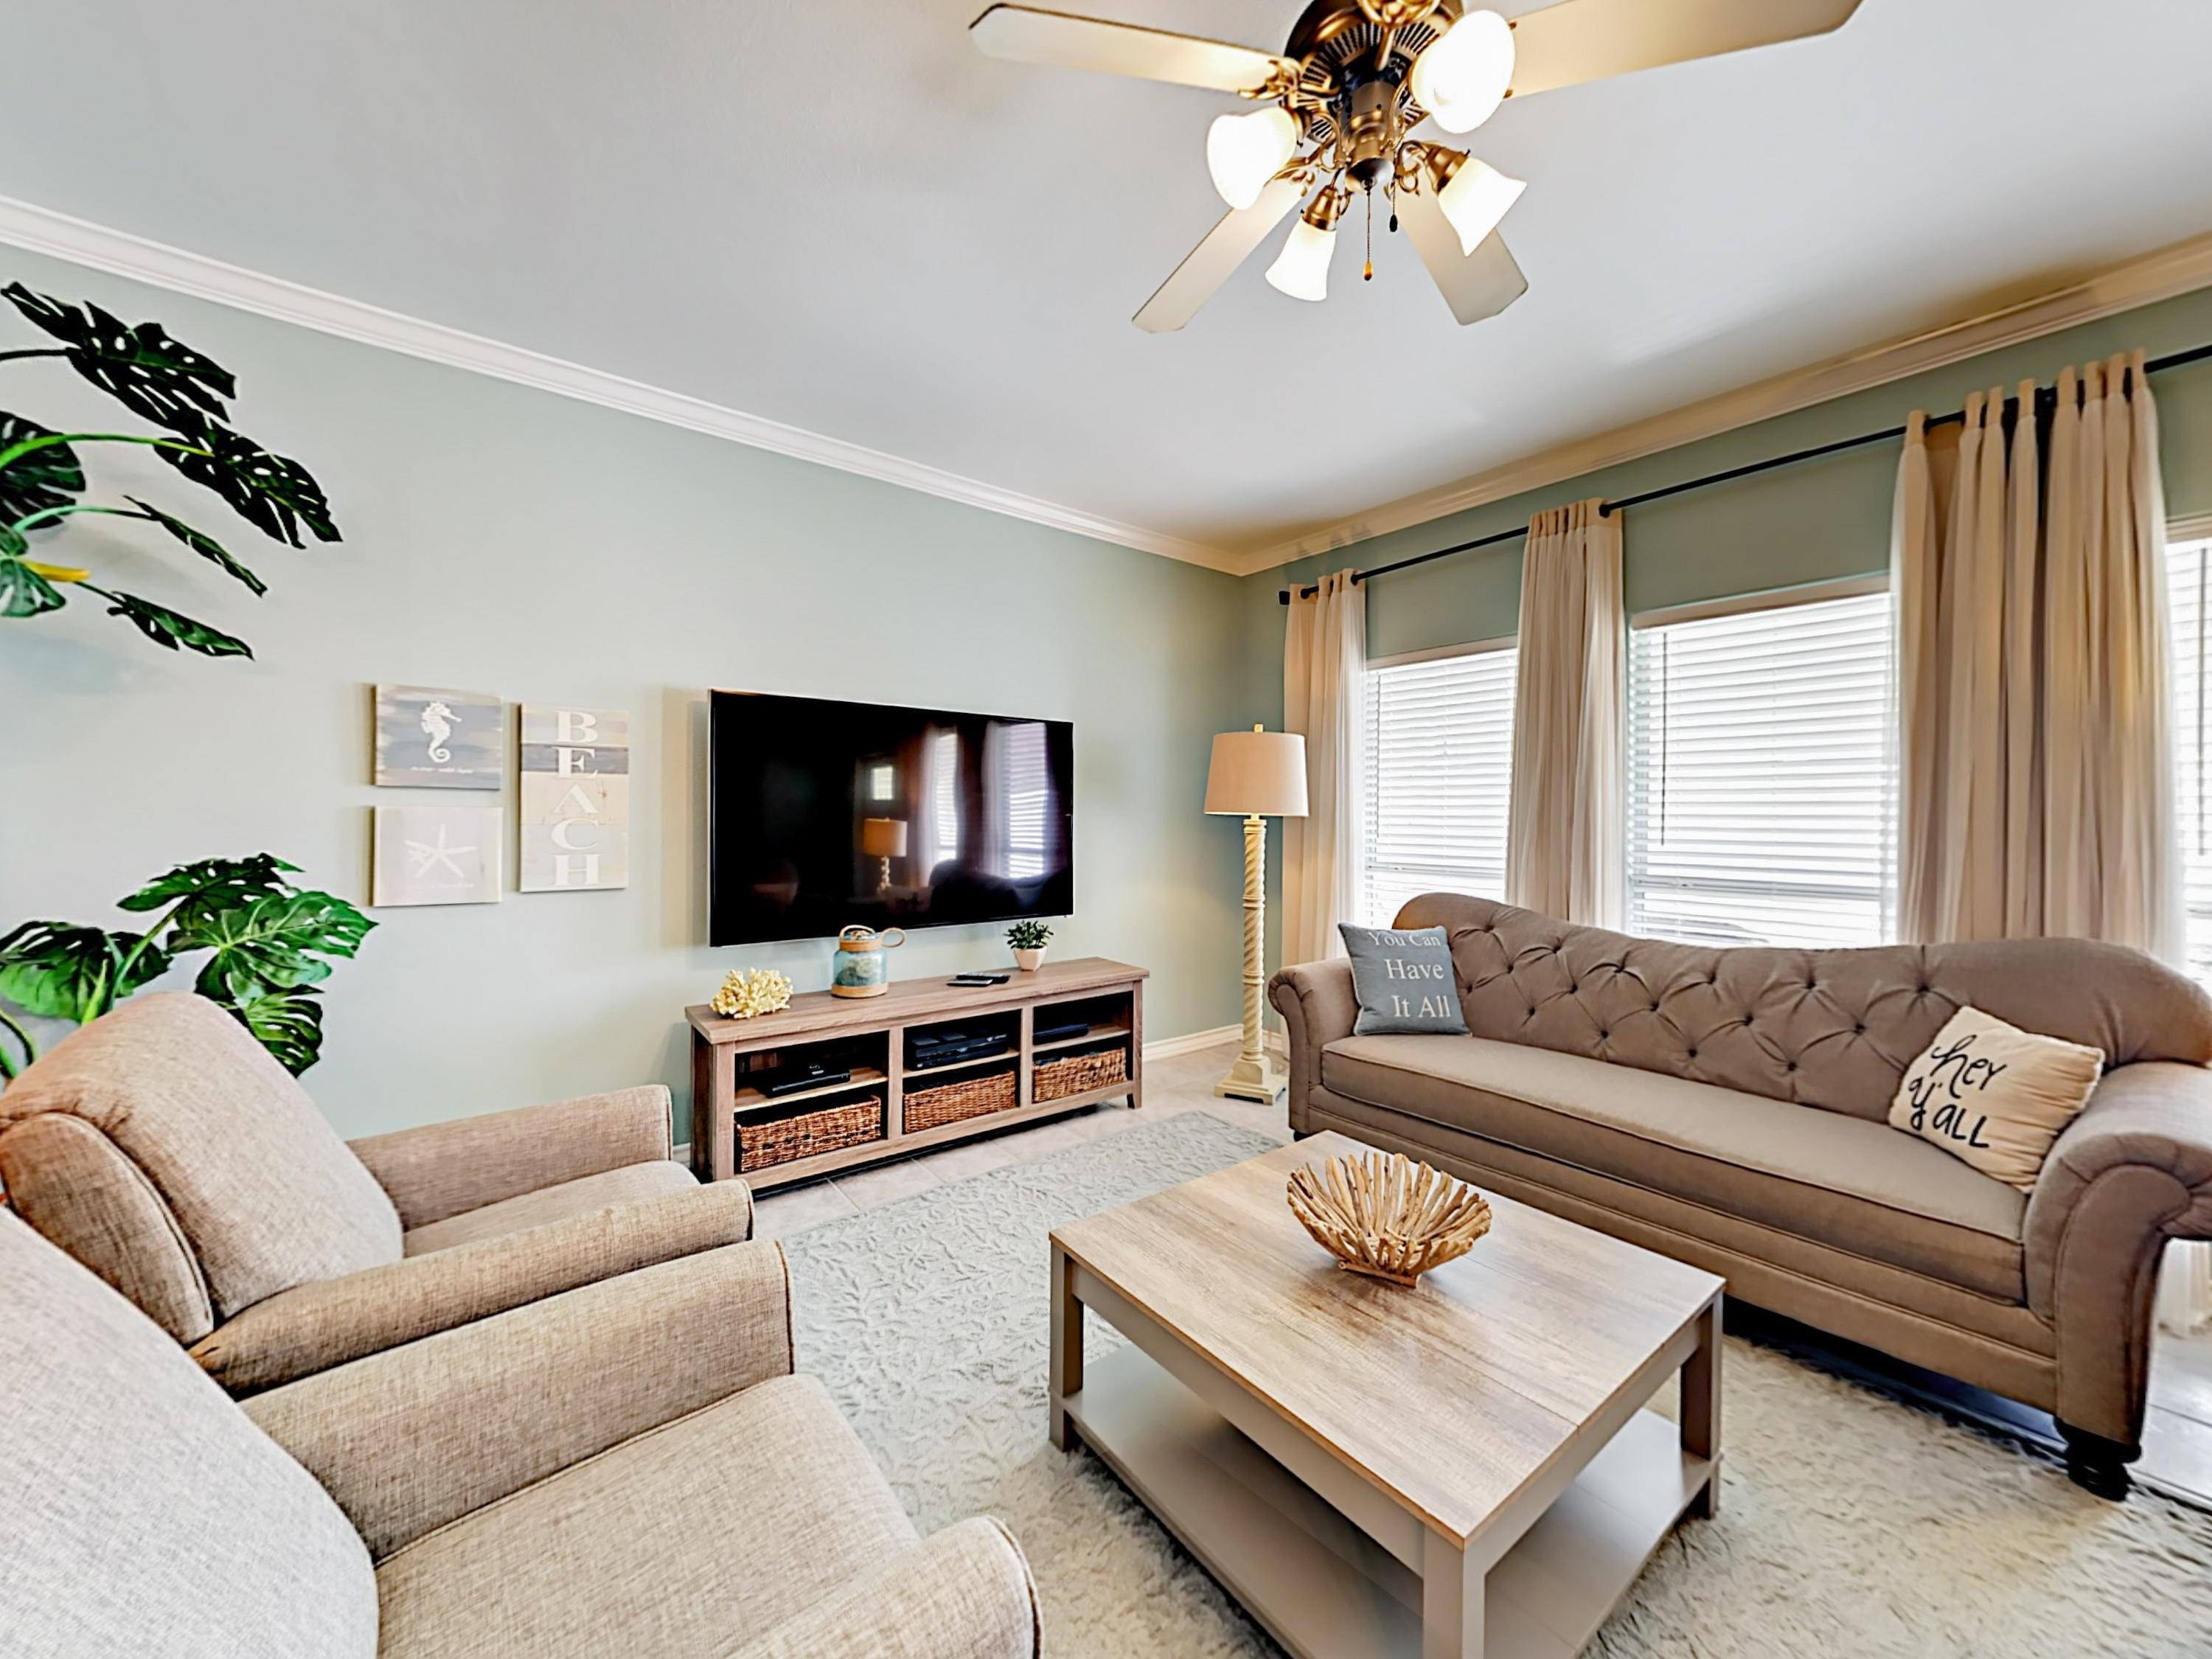 Welcome to Corpus Christi! This condo is professionally managed by TurnKey Vacation Rentals.